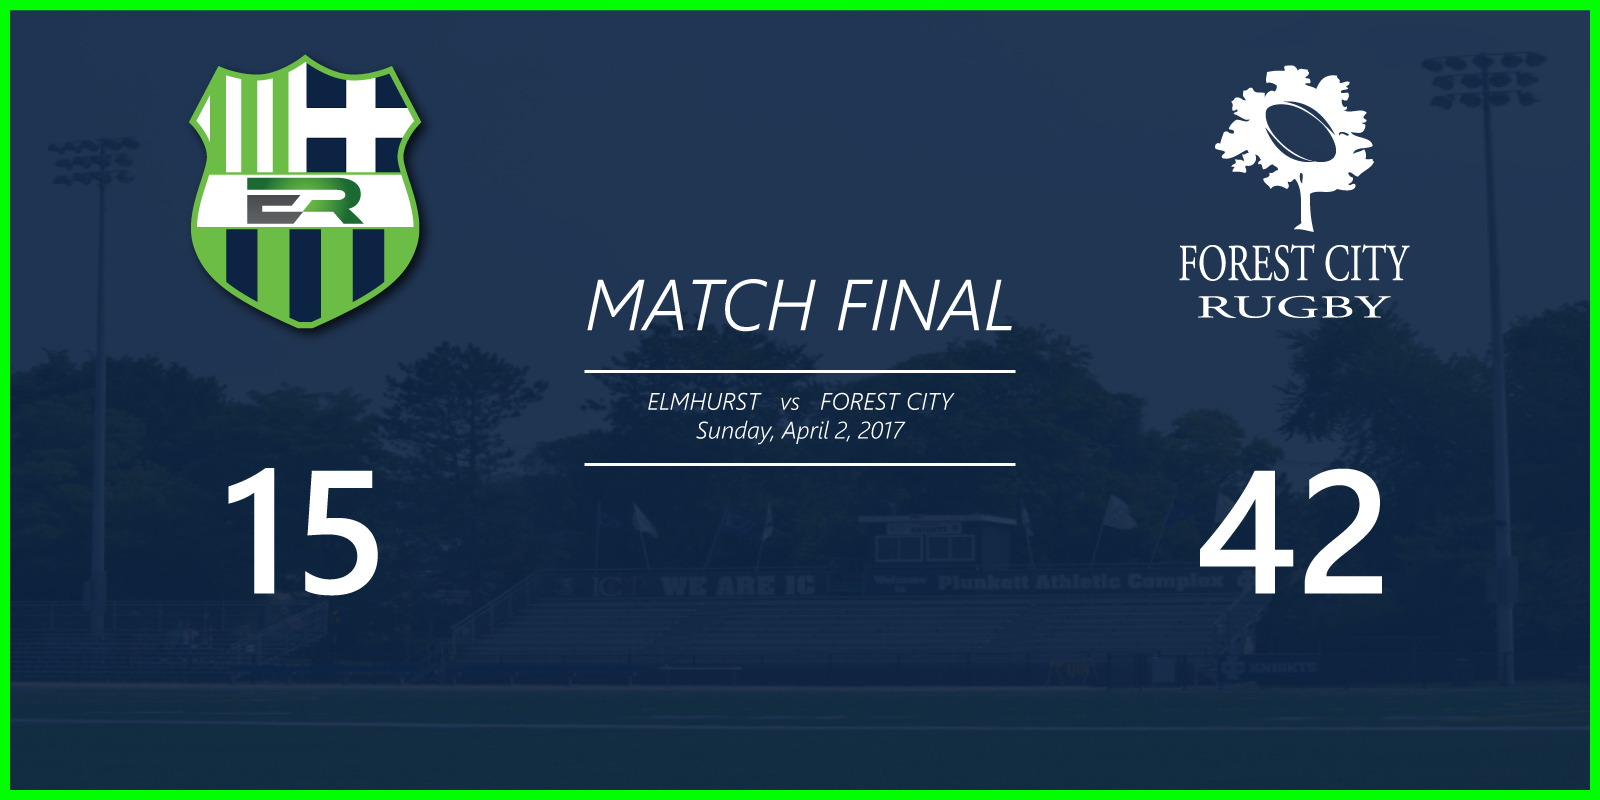 Match vs Forest City